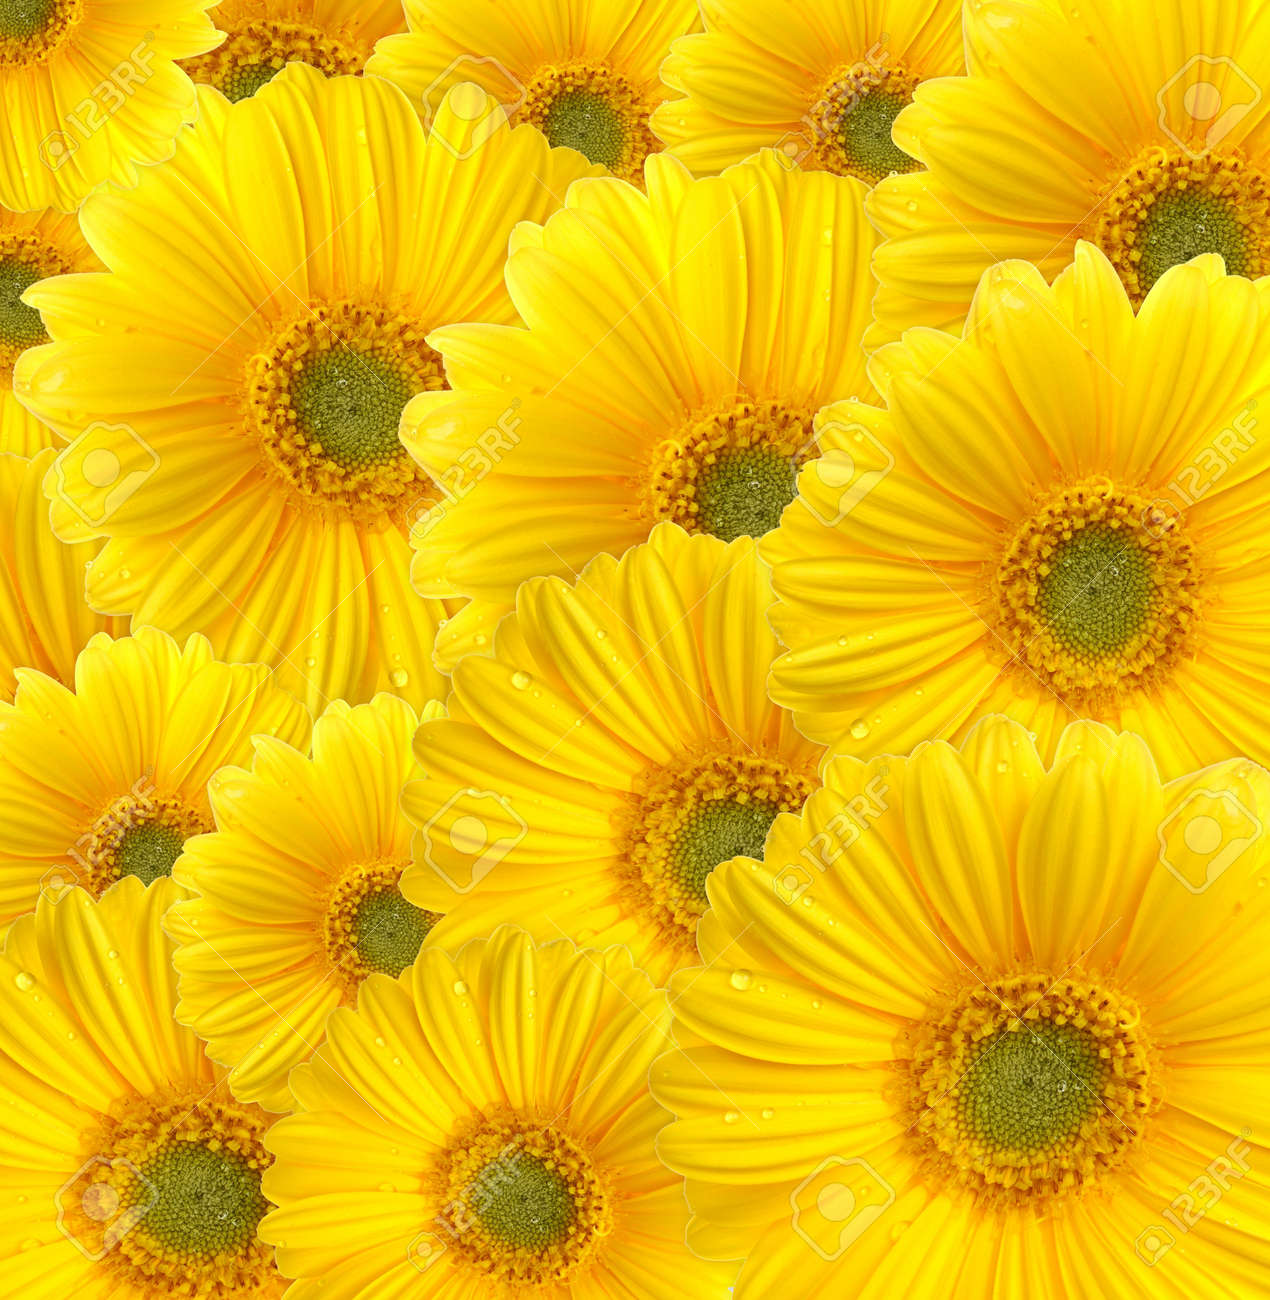 Yellow gerberas (daisy). Picture was made in a studio. Stock Photo - 786613